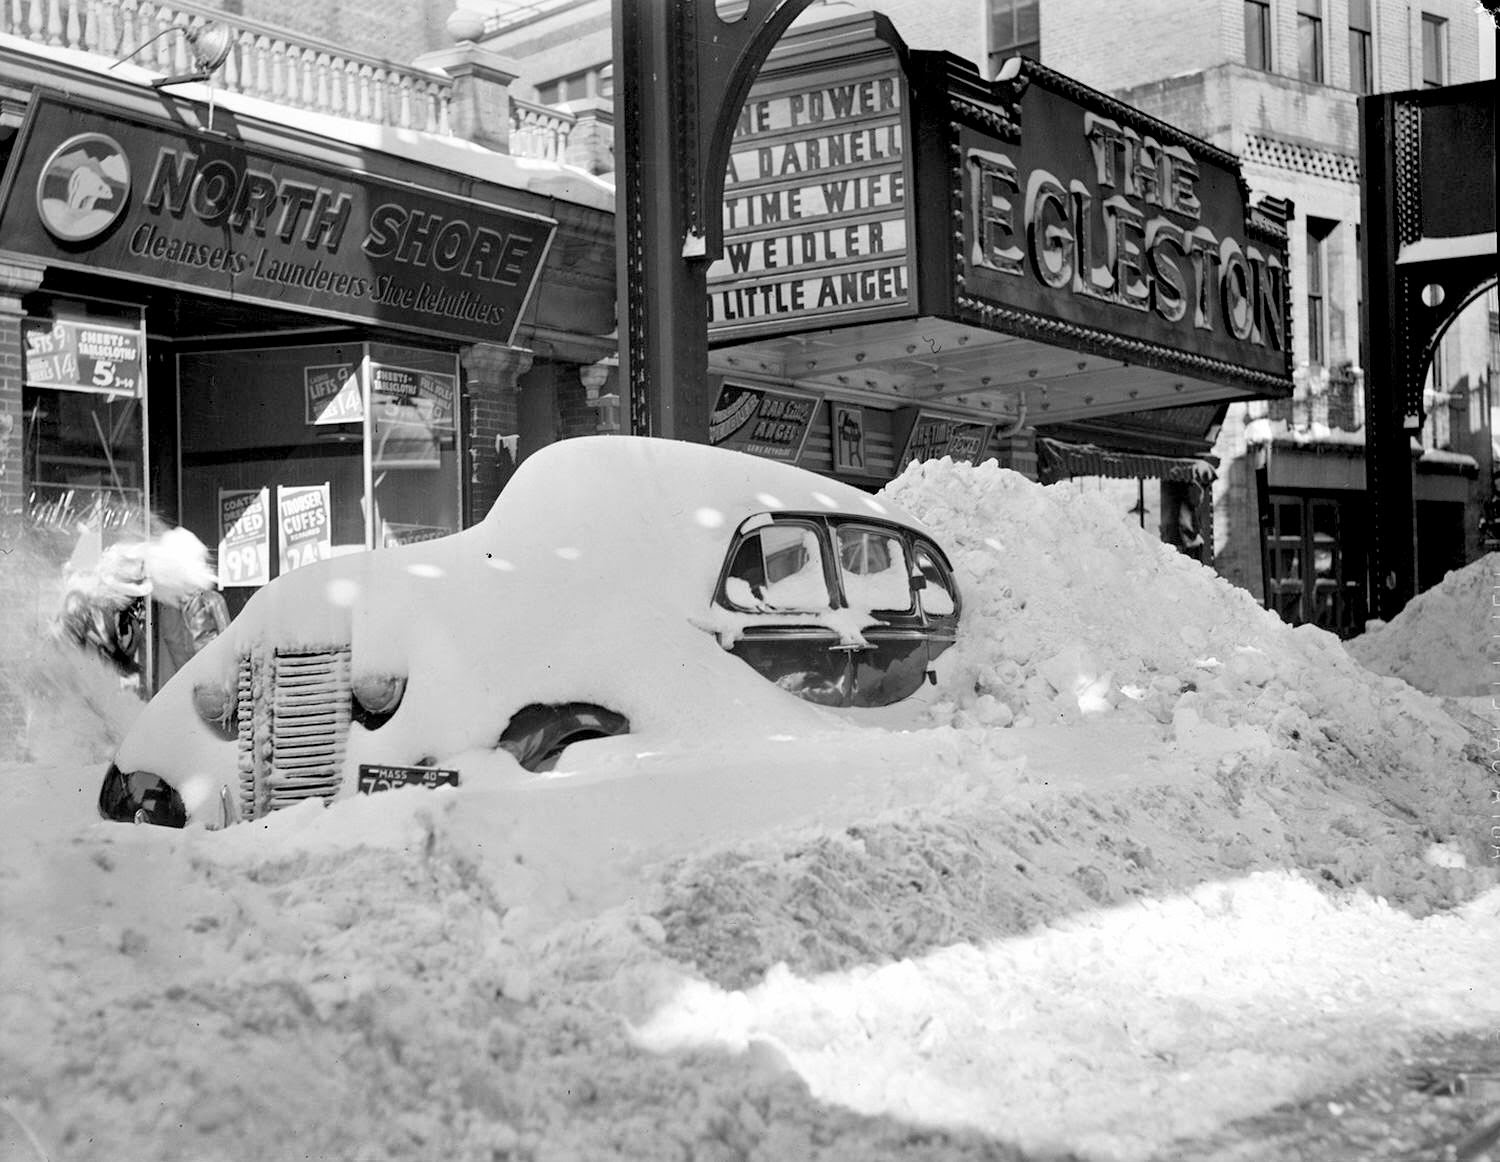 Wintry Boston in the 1950s